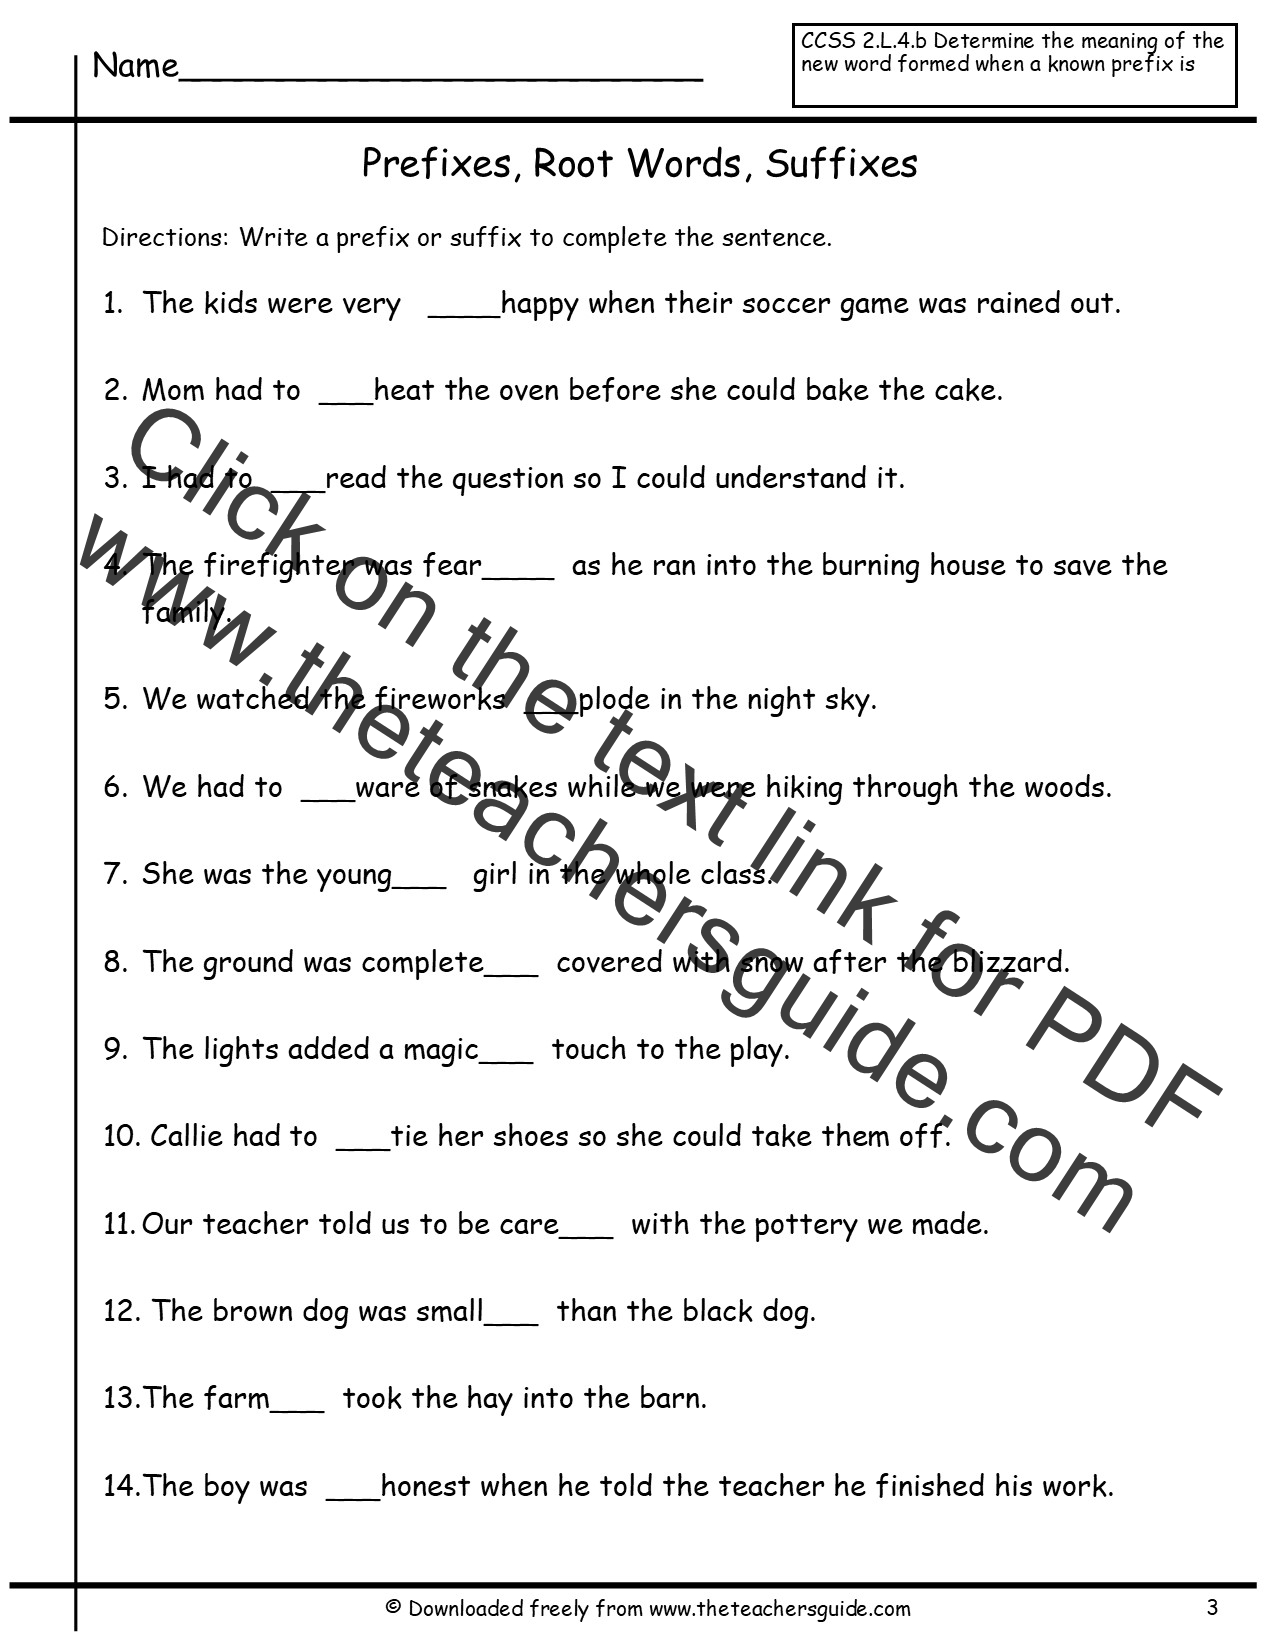 Prefix And Suffix Worksheet